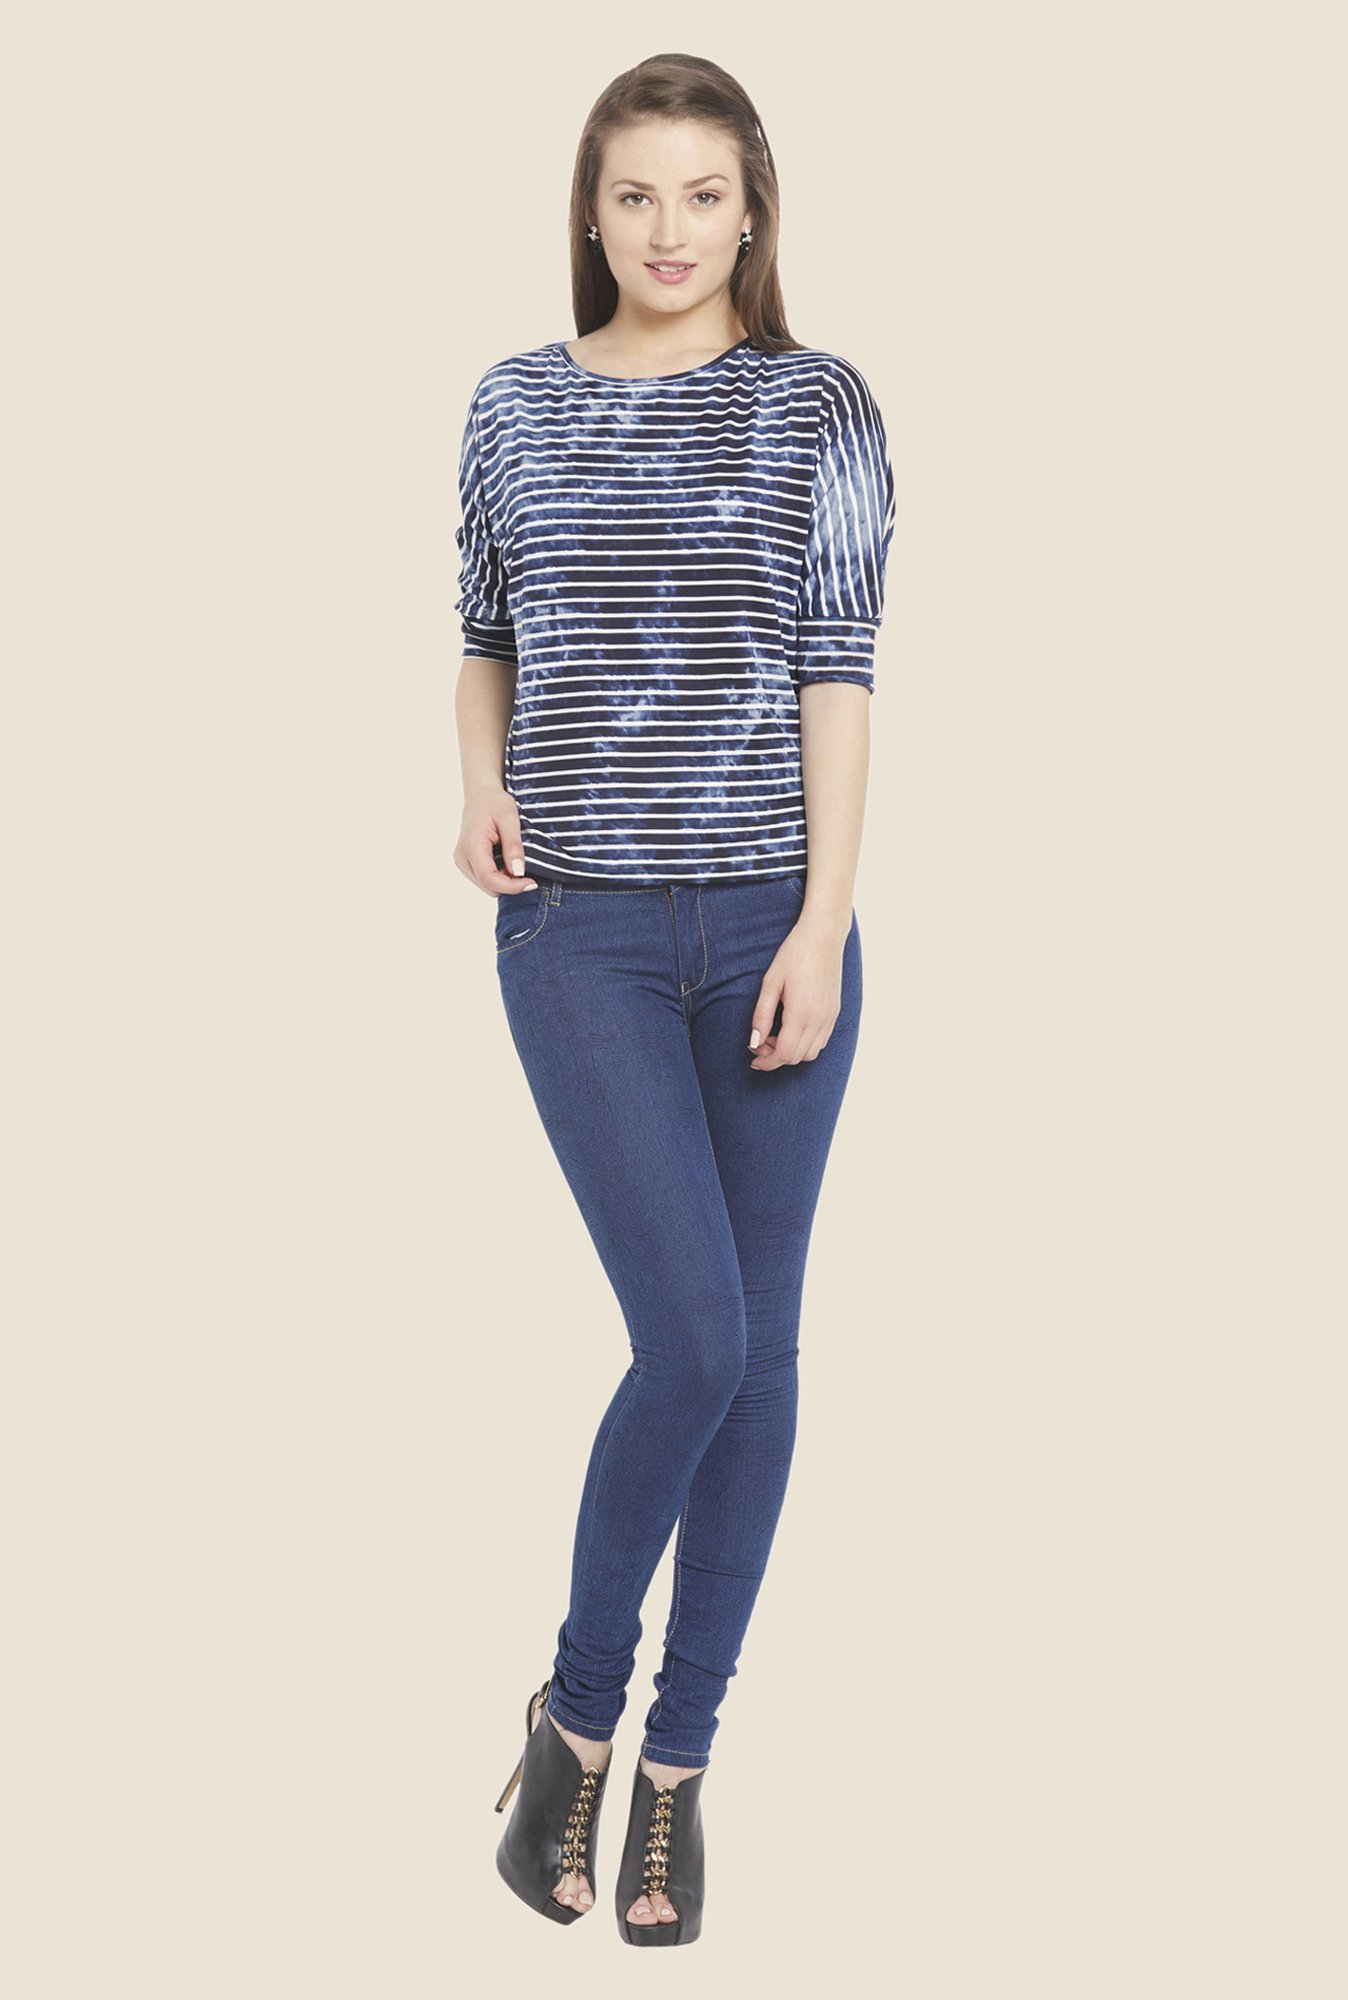 Globus Blue Striped Boat Neck Top